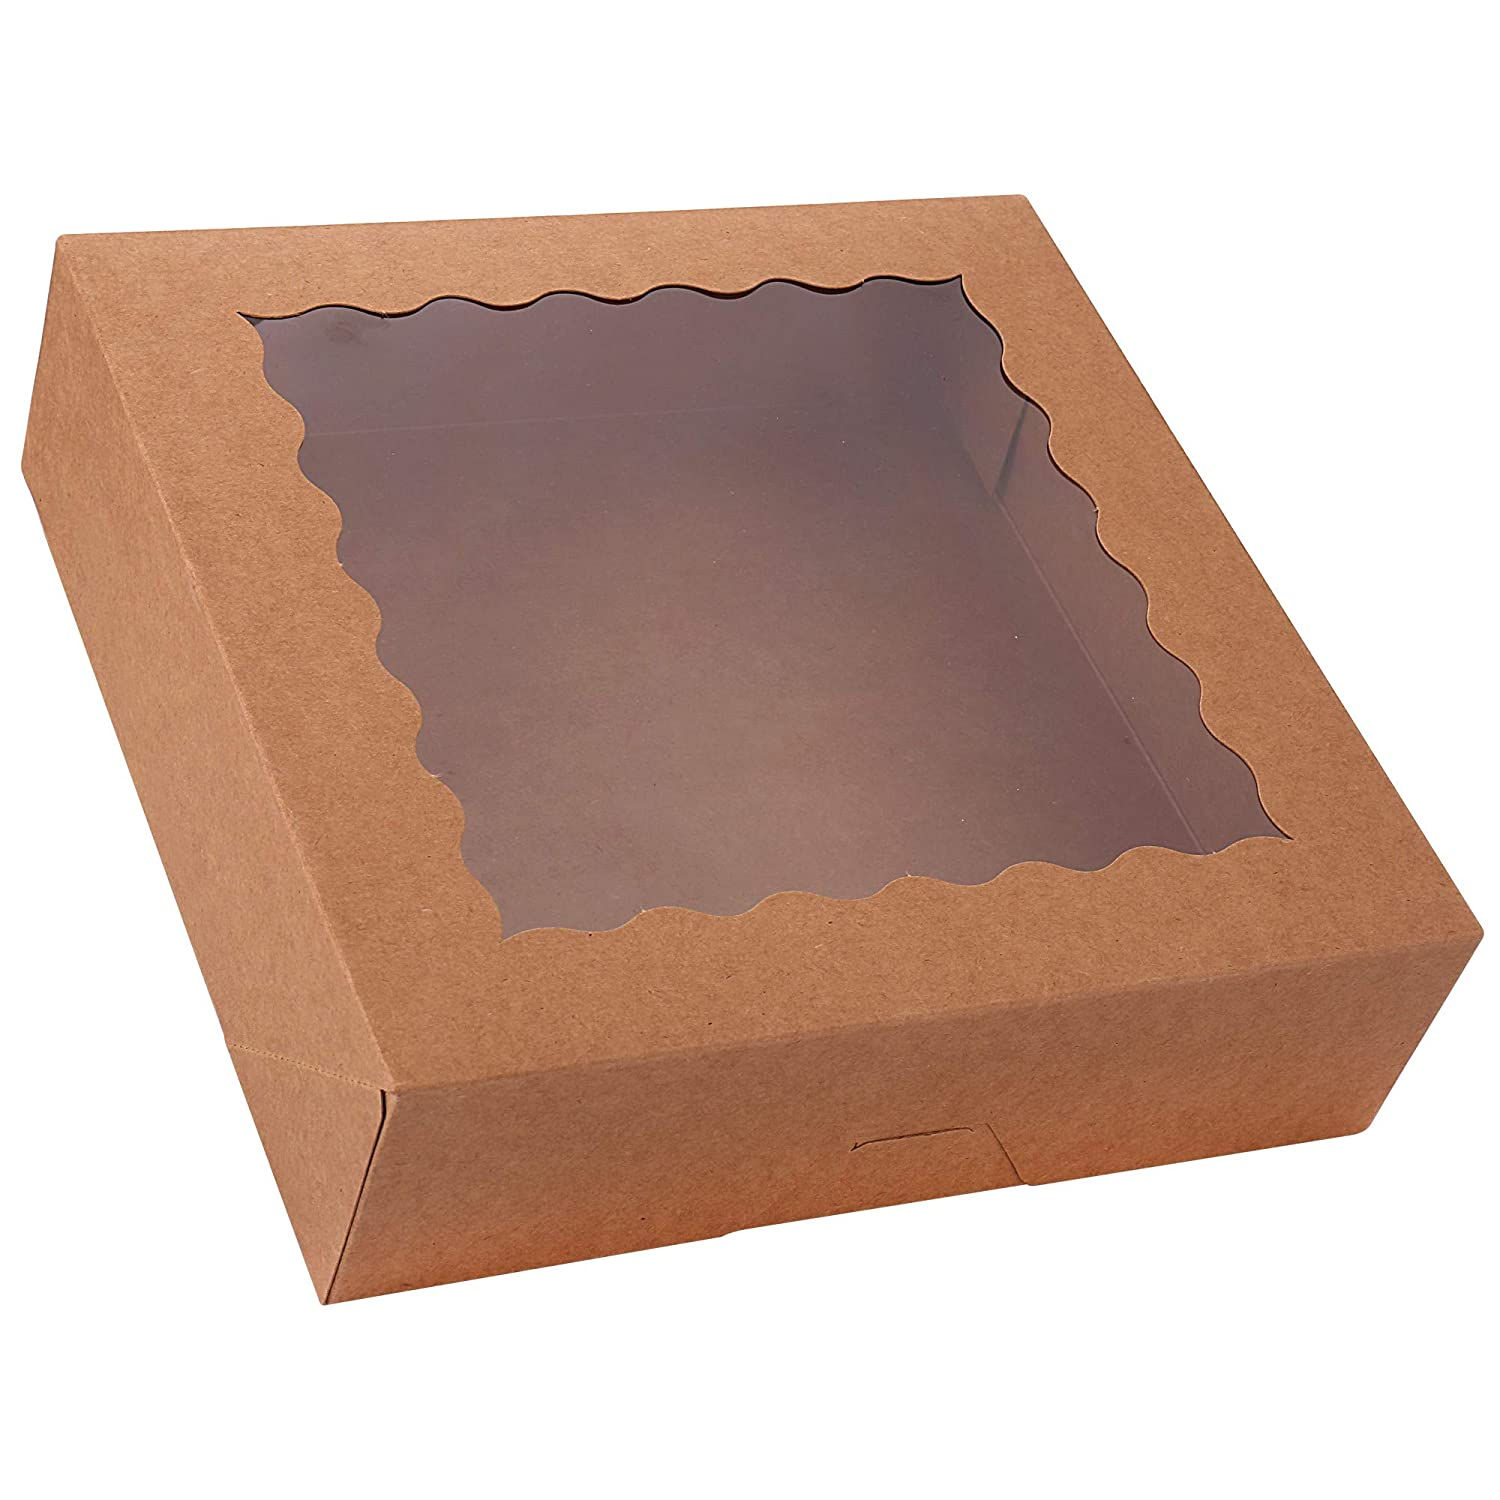 """20-Pack Pie Boxes with Window, 10"""" x 10"""" x 2.5"""", Large Kraft Cookie Boxes, Brown Bakery Boxes for Muffins, Donuts and Pastries"""